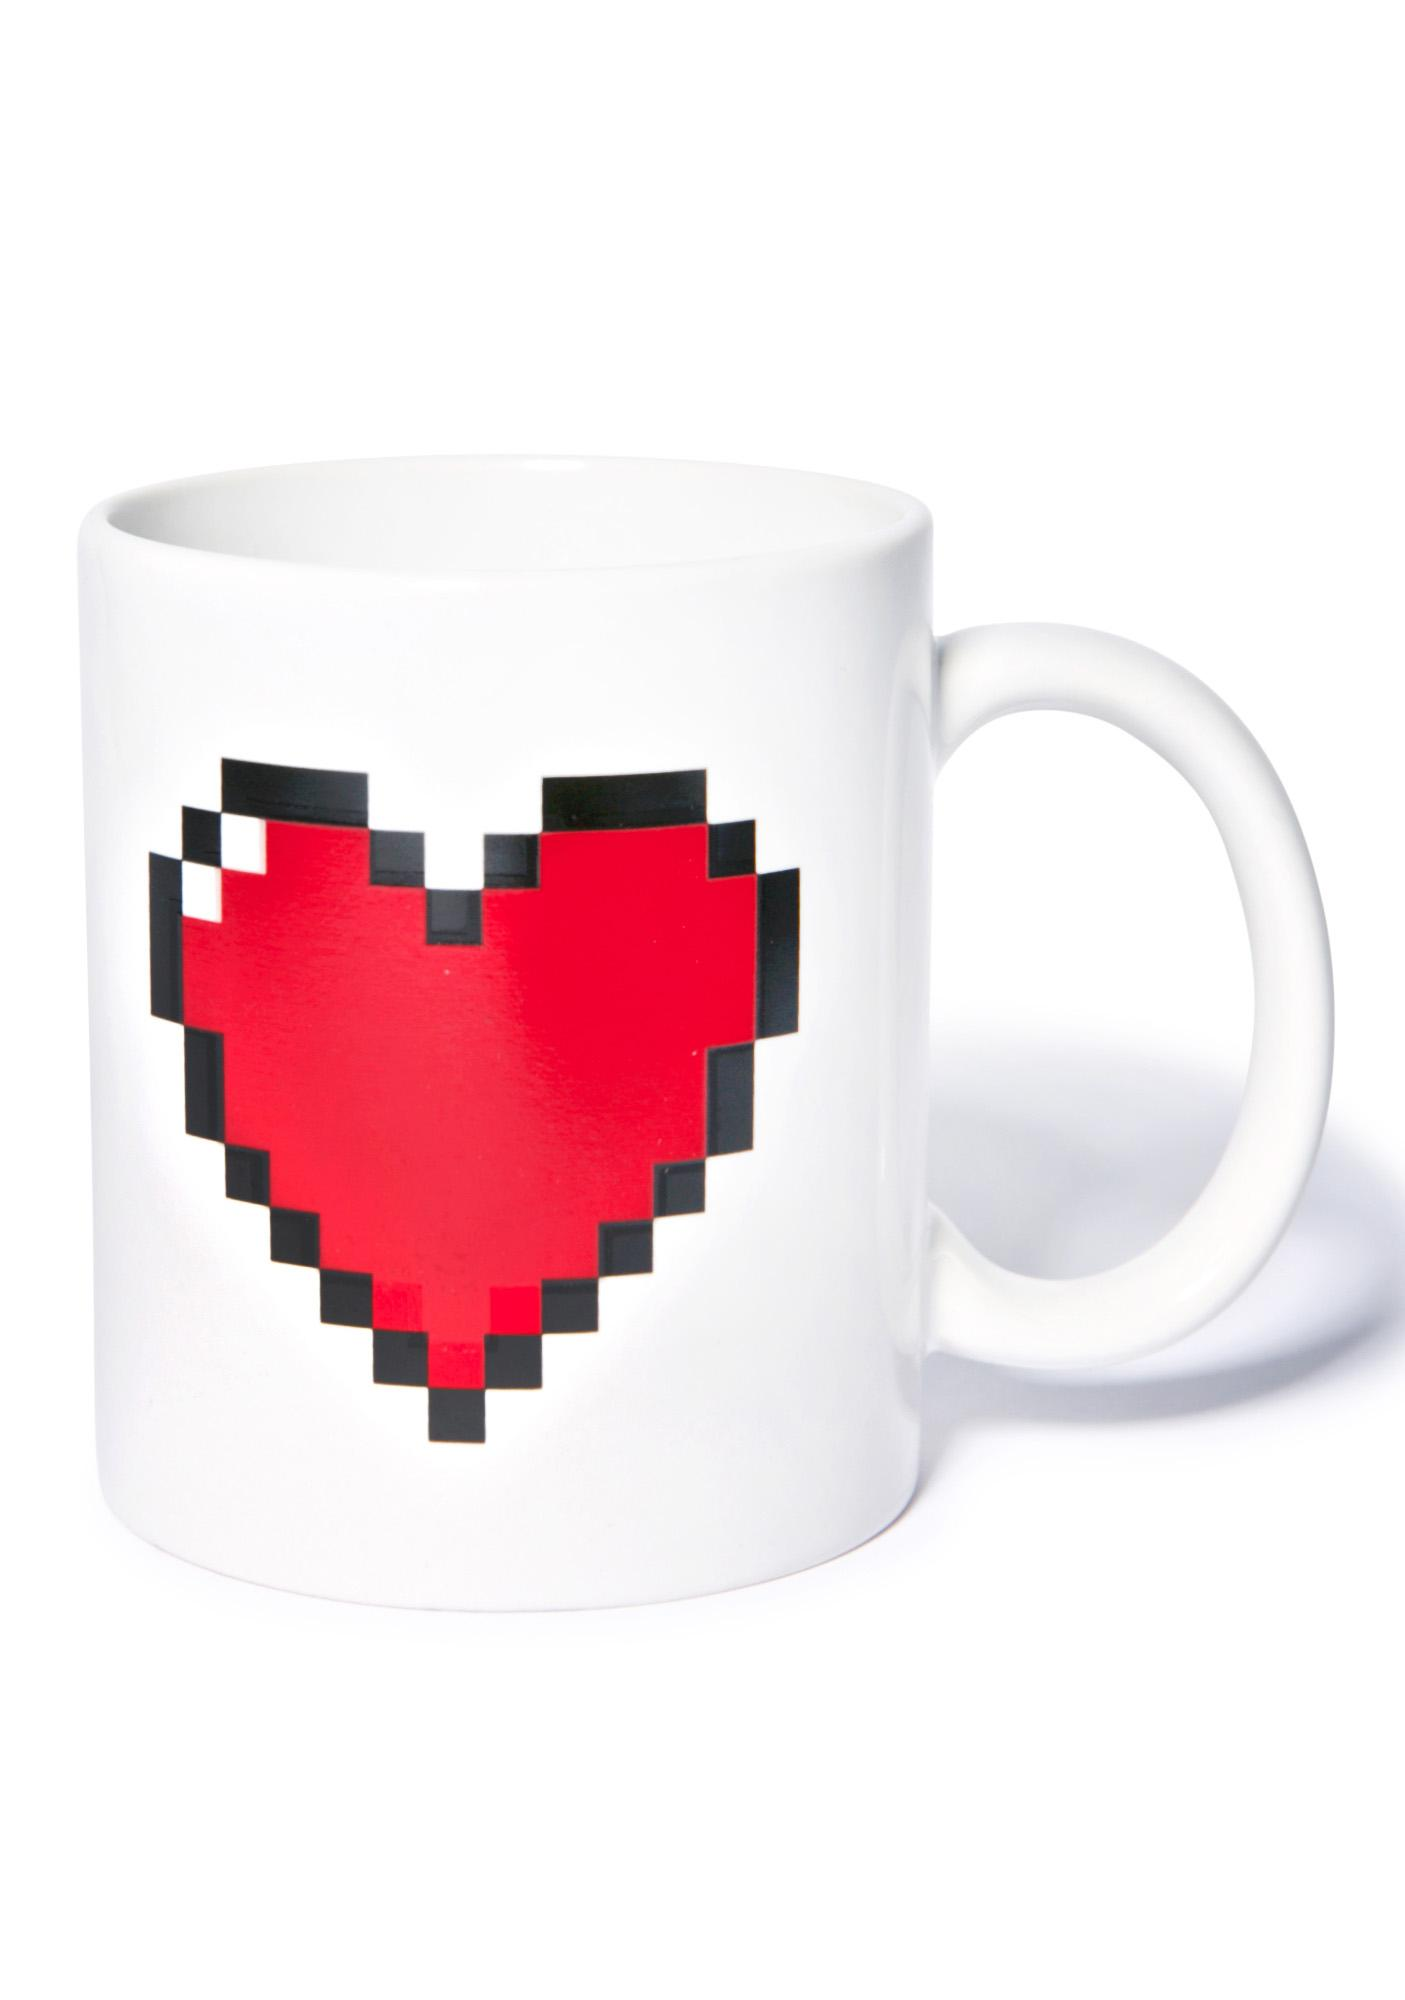 Playing Games With My Heart Mug